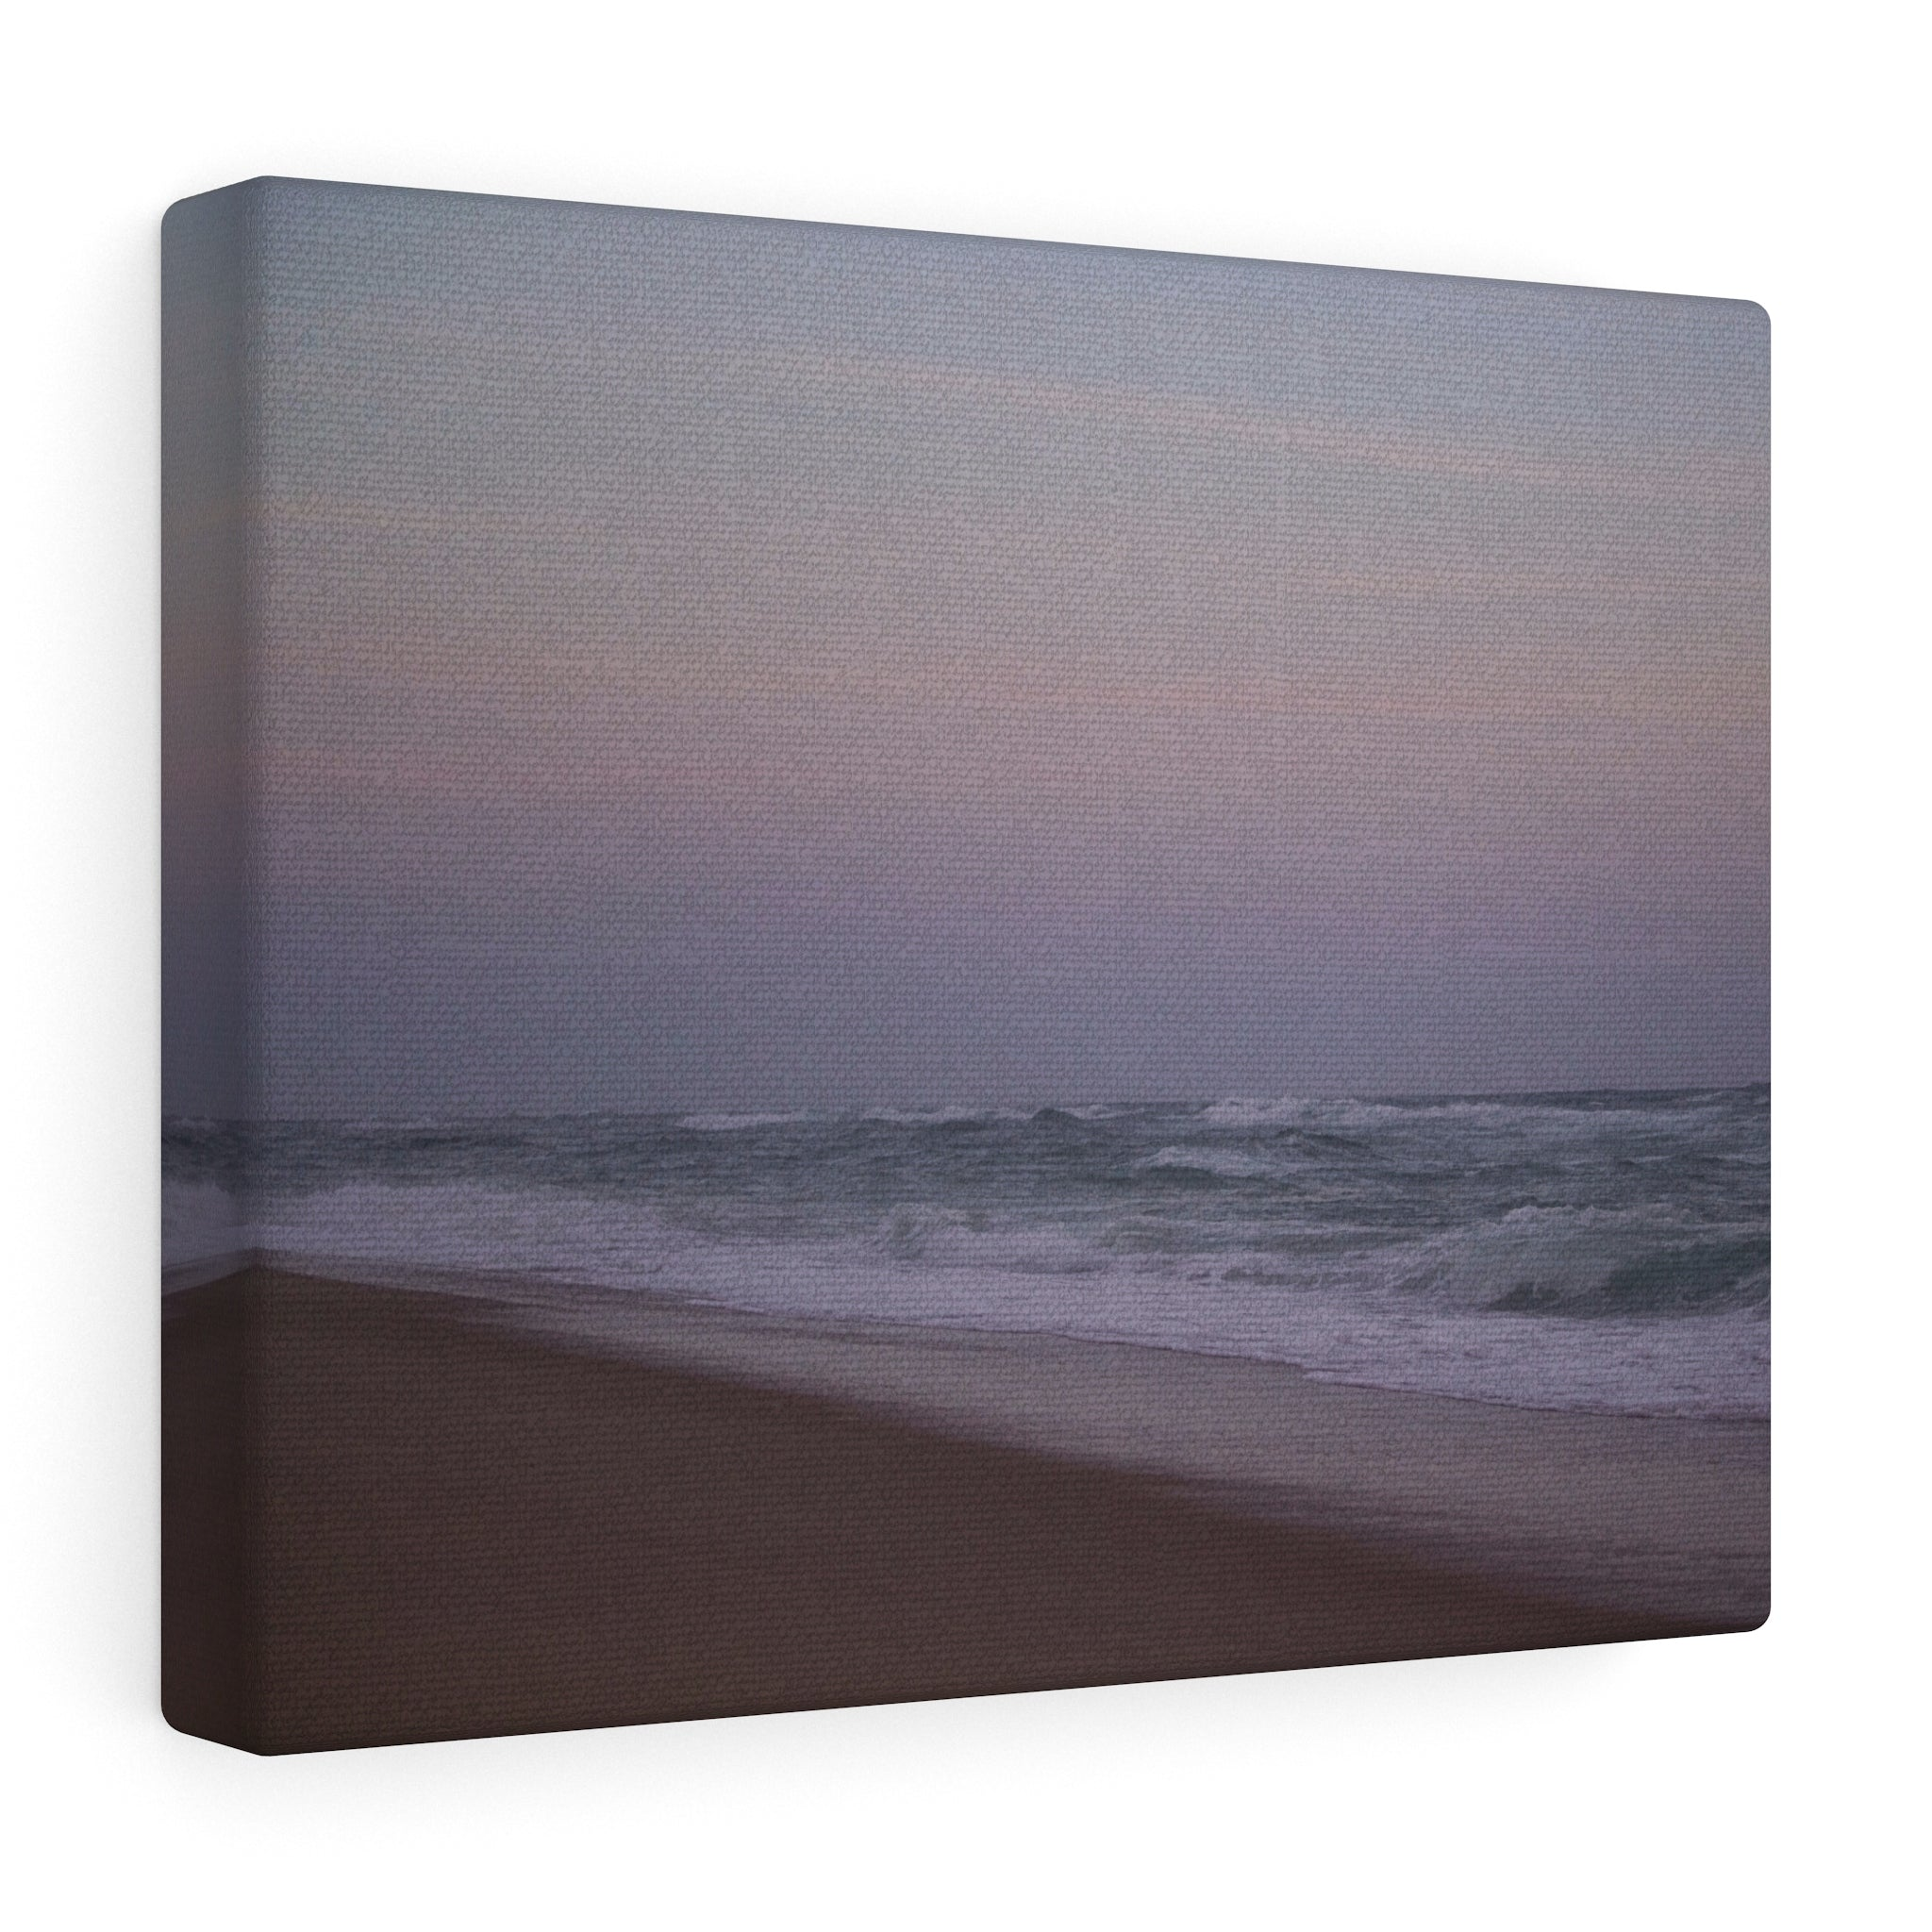 The Misty Shore Canvas Gallery Wrap